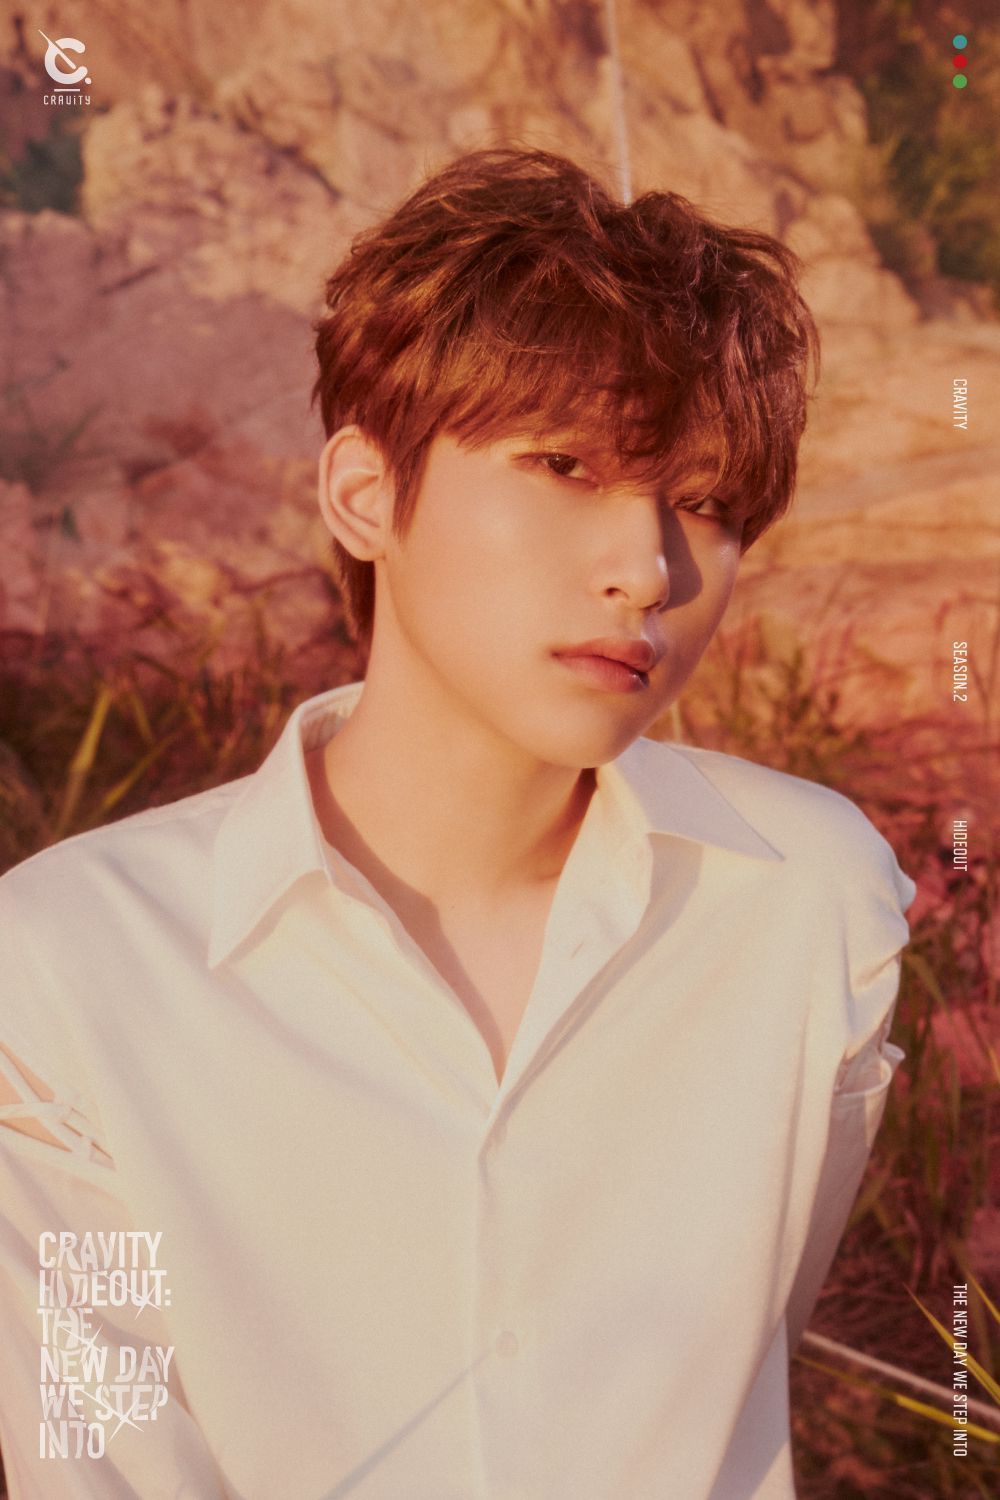 Everything Cravity Concept Photos 2 In 2020 New Day Starship Entertainment Boy Groups Gravity industries, founded in 2017 has grown from its humble beginnings into a multi million dollar organisation whose influence spans the globe. pinterest